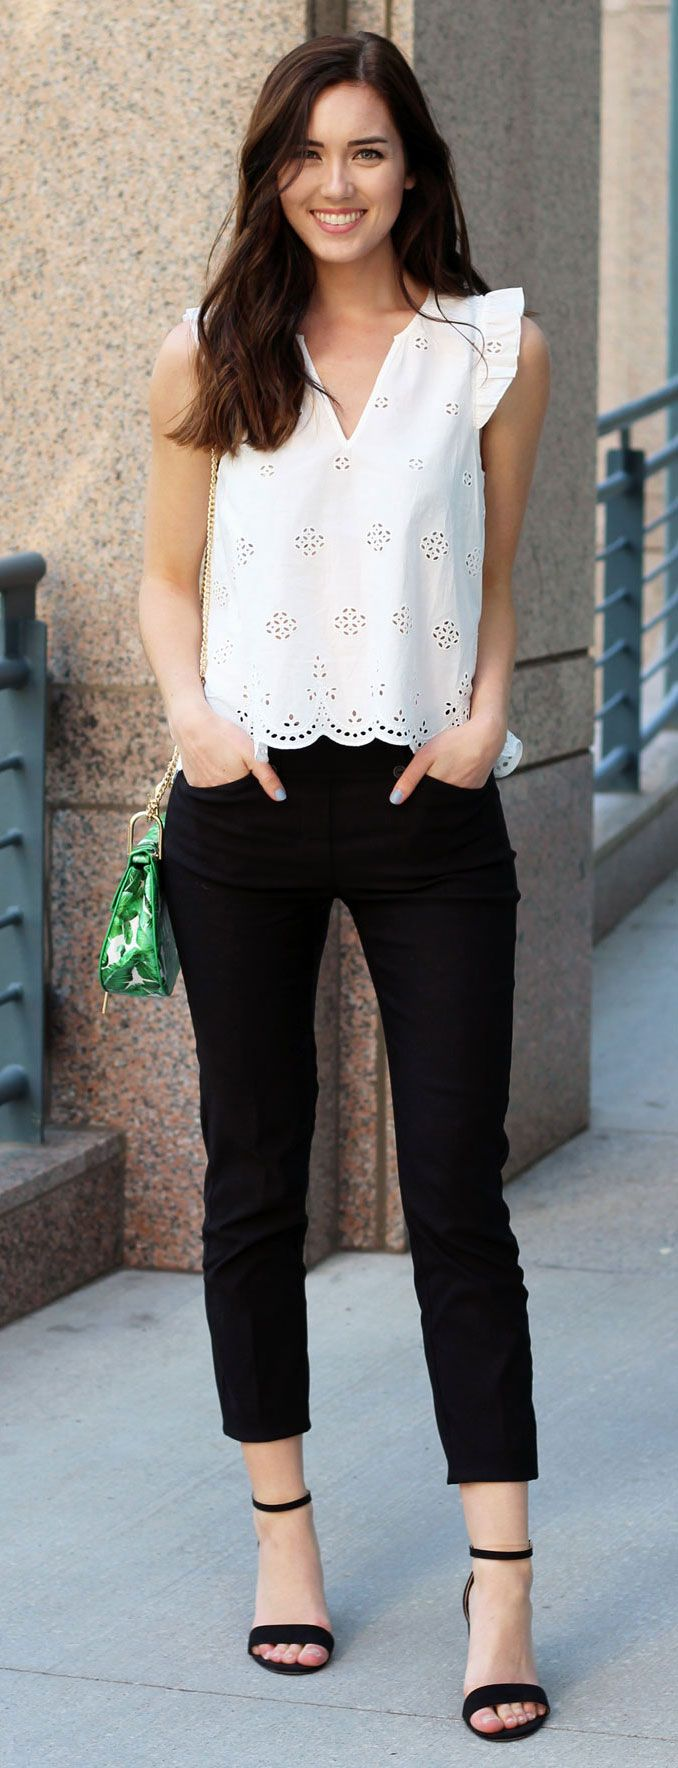 The perfect black and white outfit to still look young and sexy. These black trousers are so flattering, and the eyelet white top is on sale! By fashion blogger Marie's Bazaar